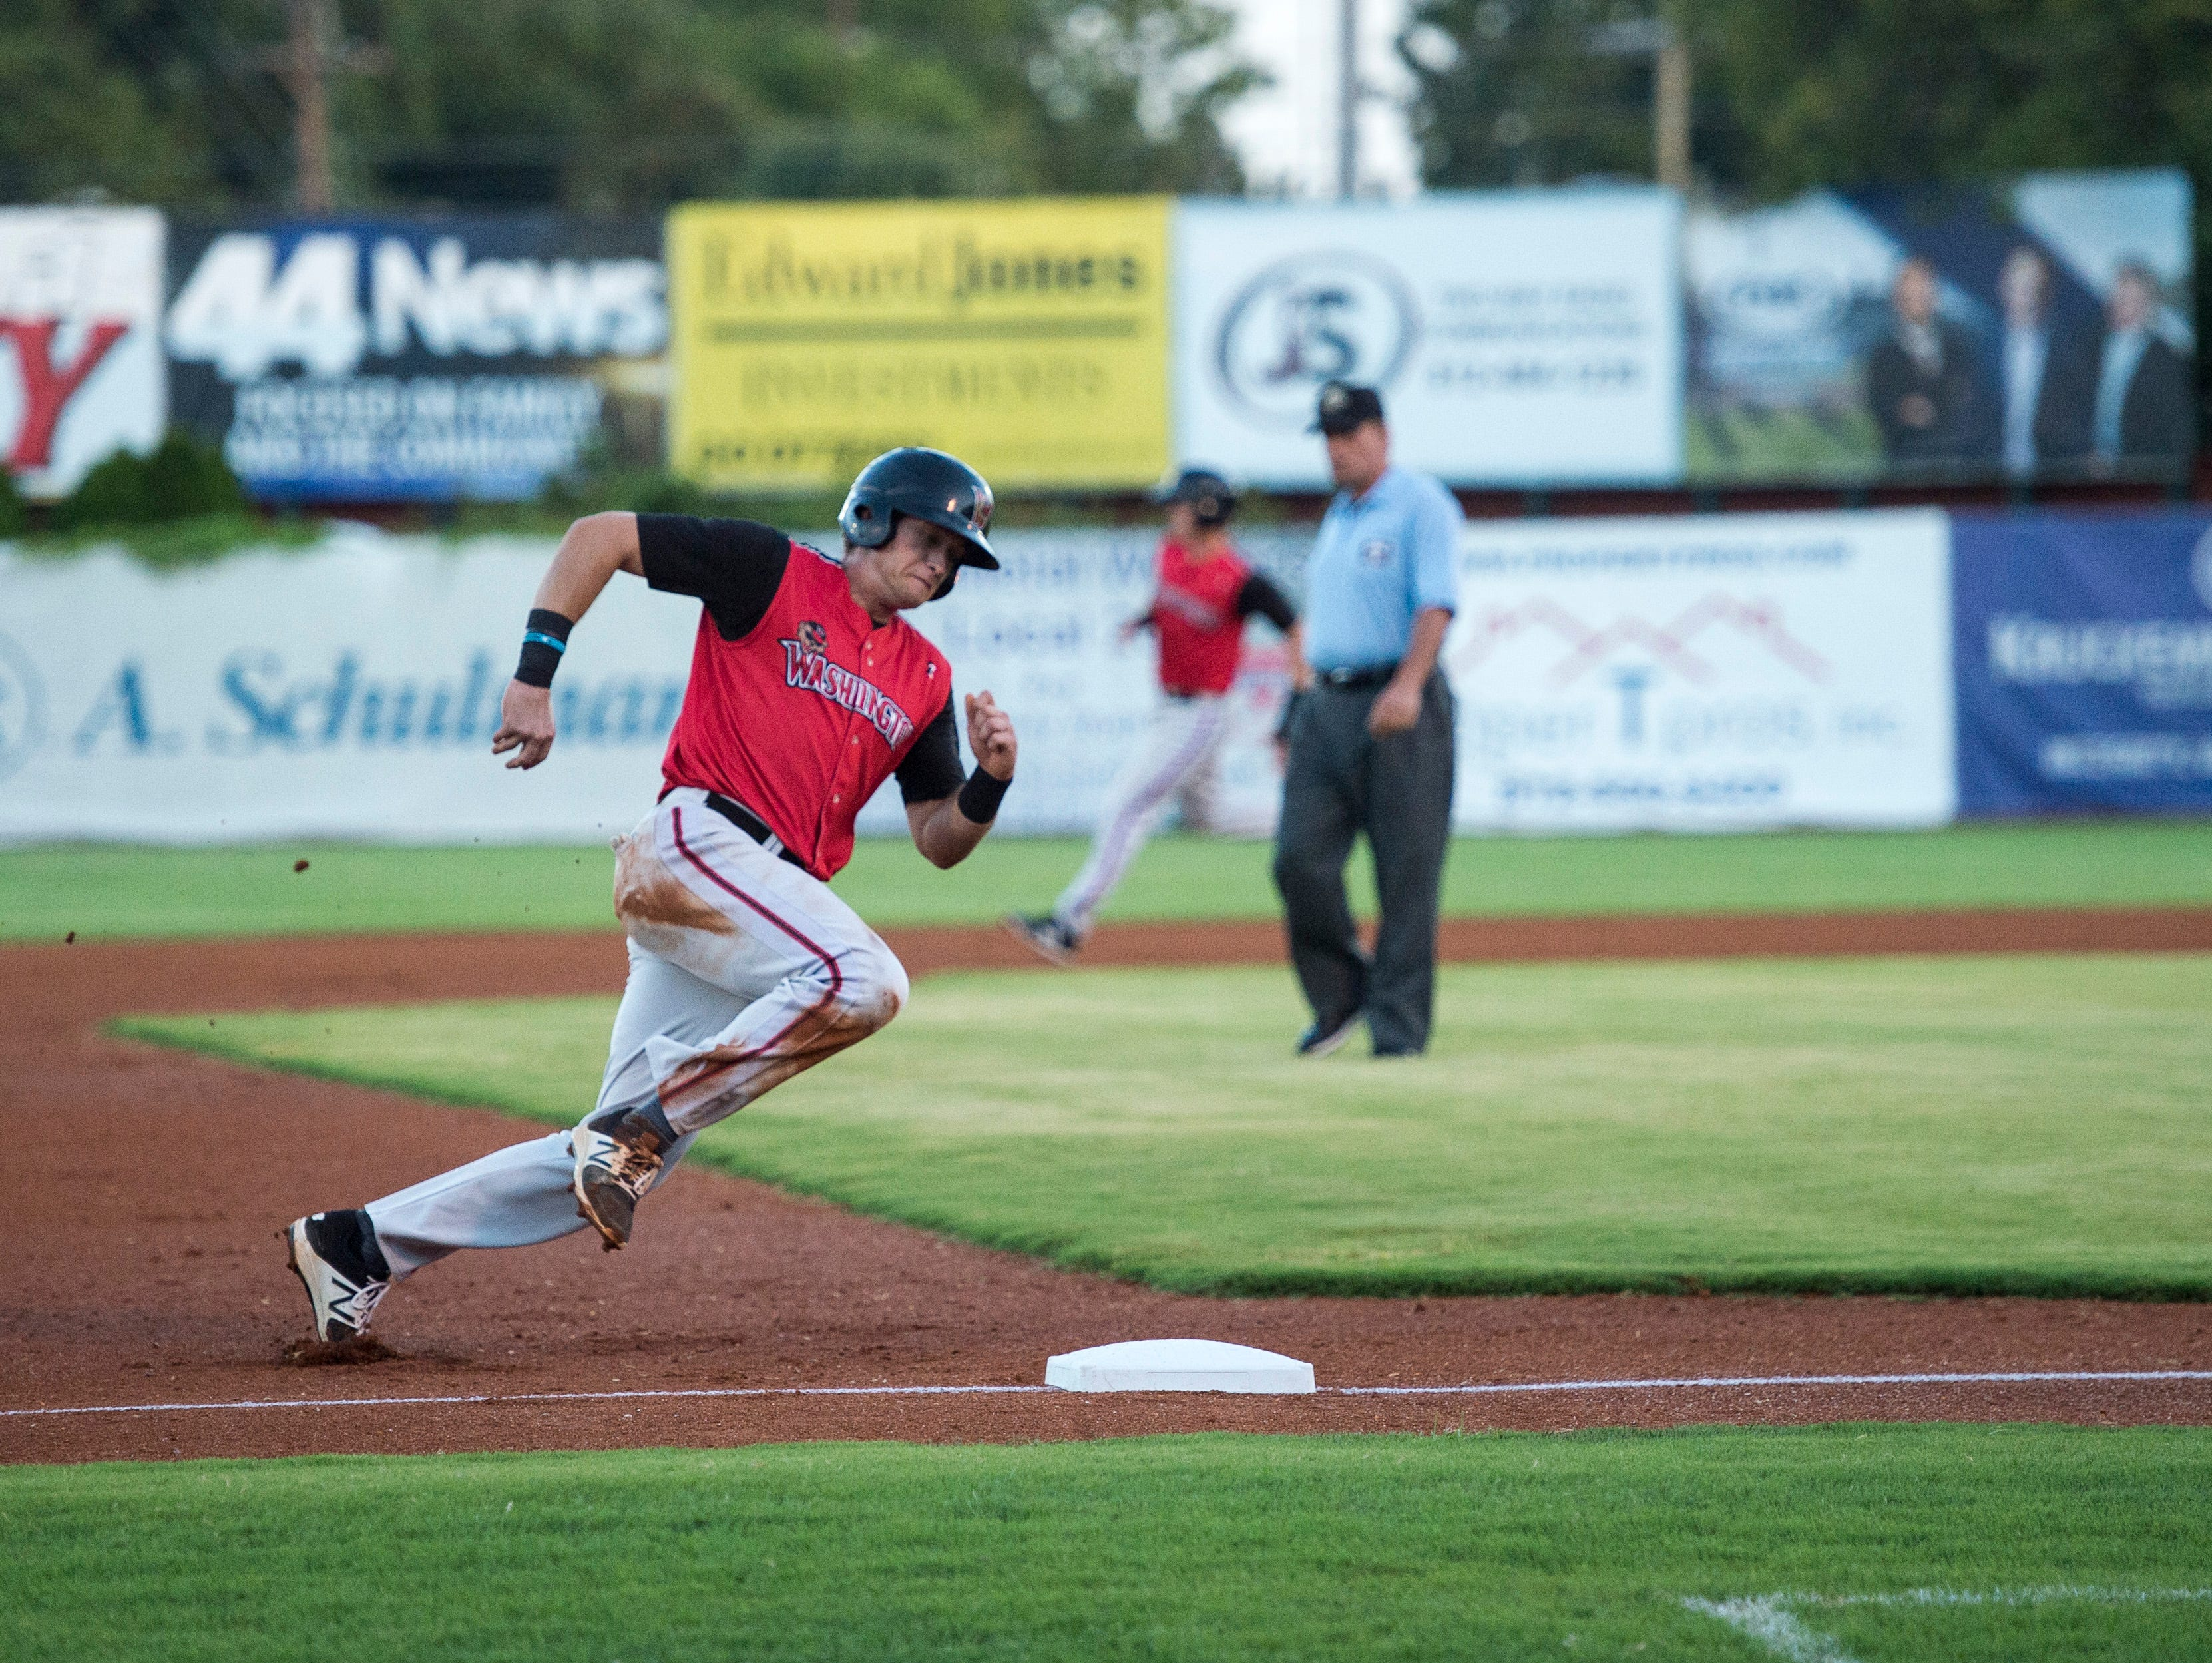 Washington's Roman Collins (19) rounds third base during game two of the Frontier League Division Series at Bosse Field against the Evansville Otters Wednesday, September 5, 2018.